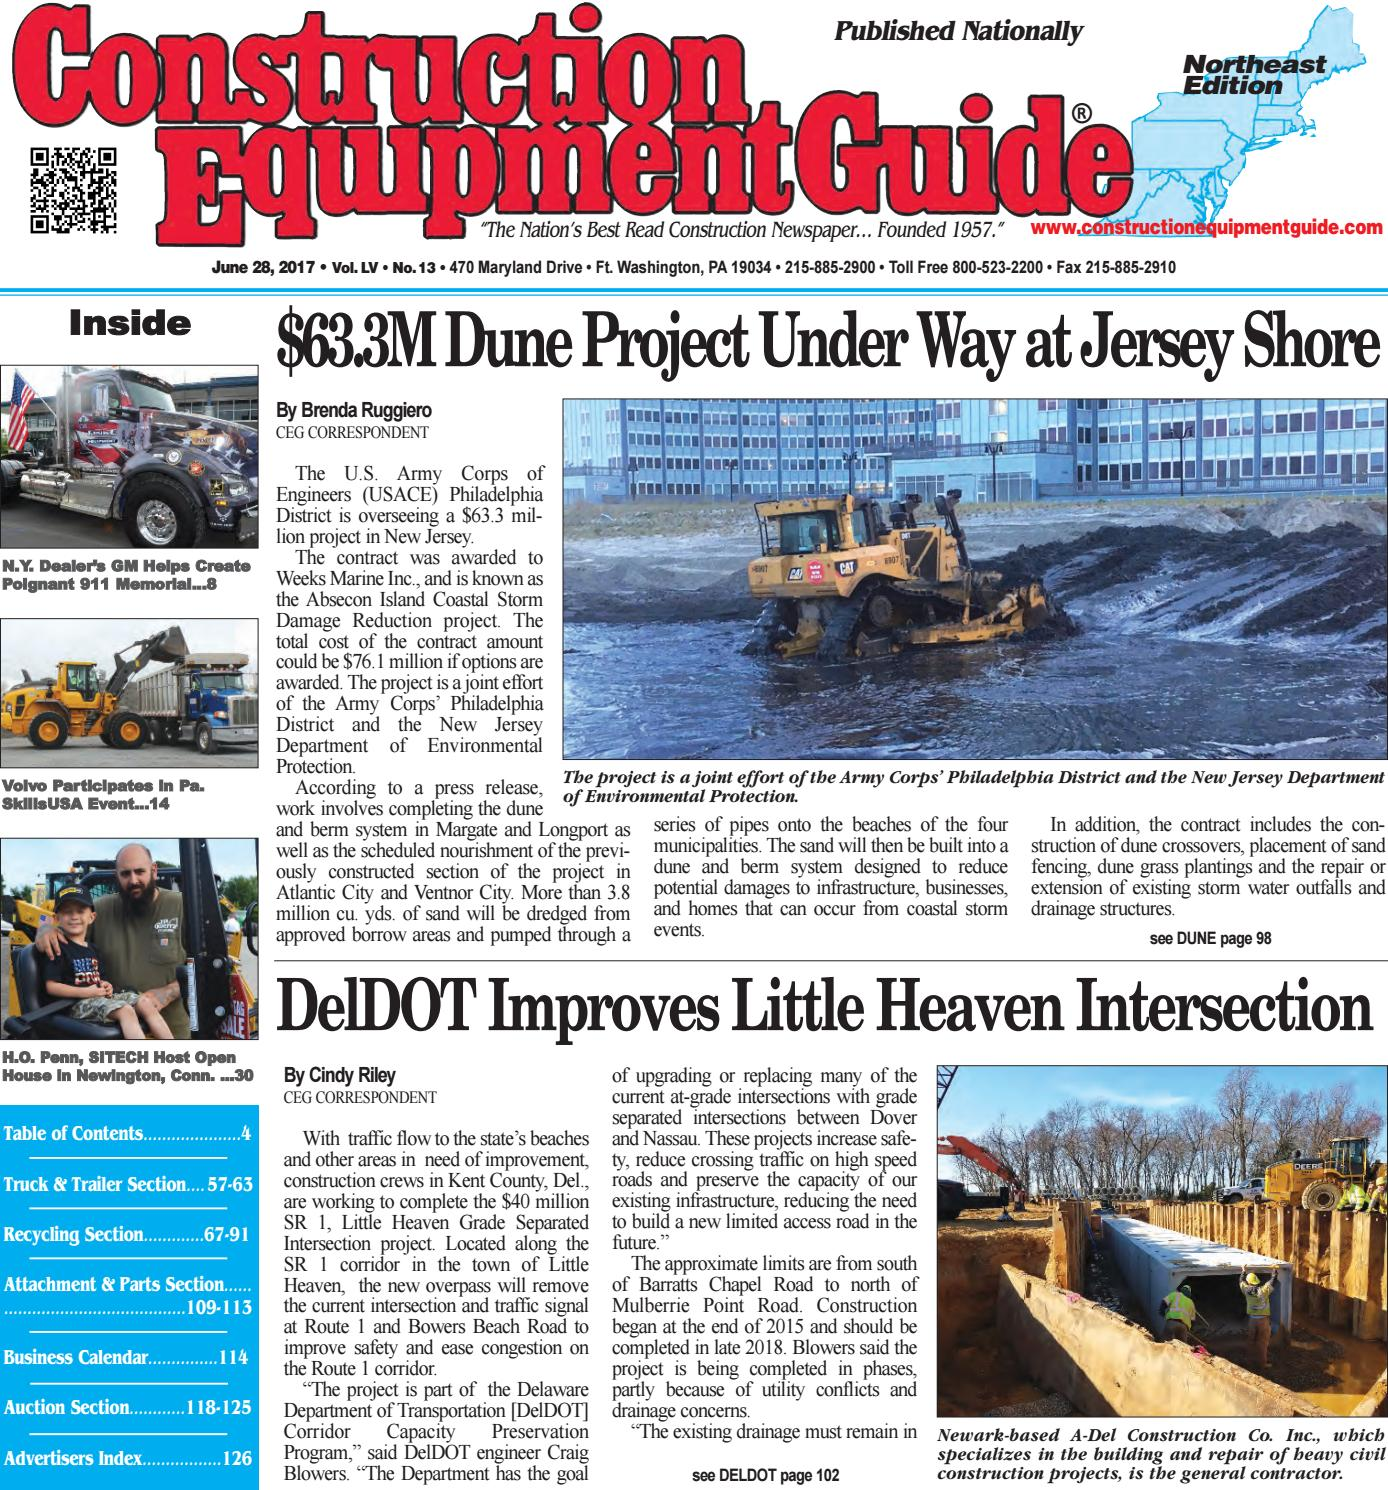 Northeast 13 June 28, 2017 by Construction Equipment Guide